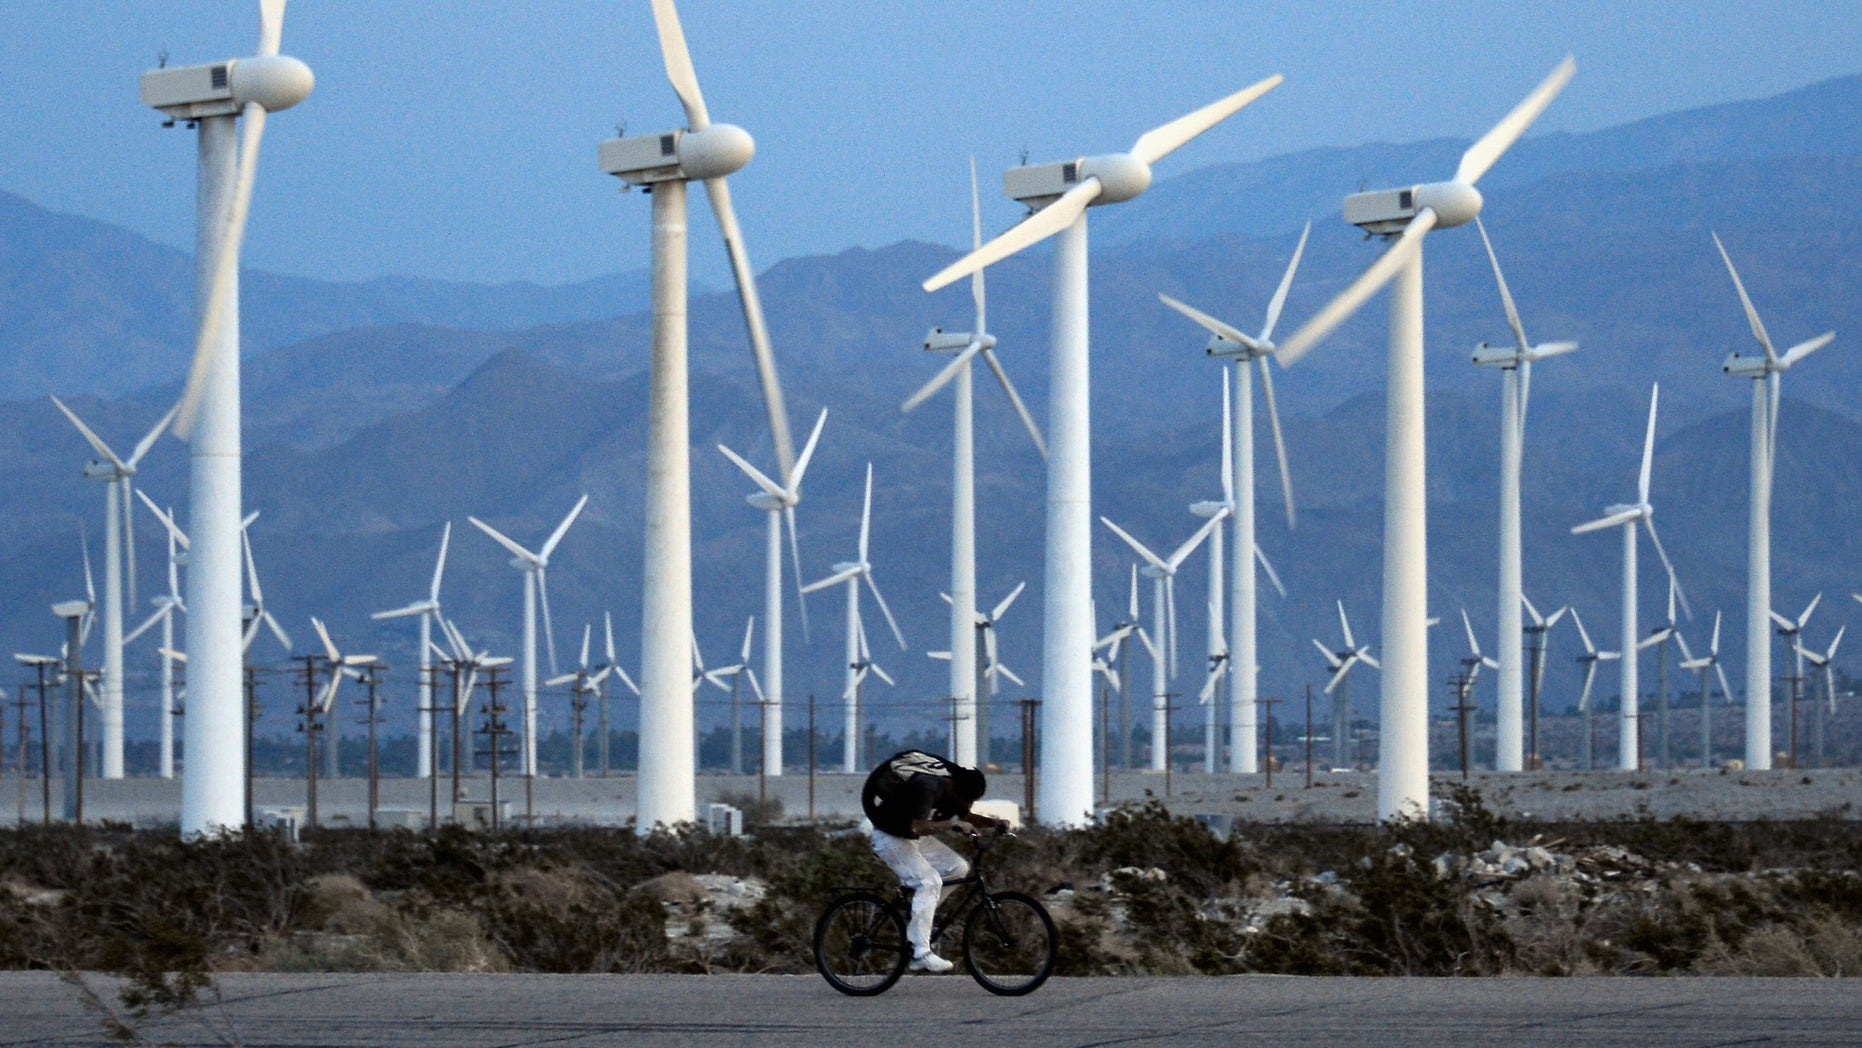 PALM SPRINGS, CA - MARCH 27:  A man rids his bike against the win as giant wind turbines are powered by strong winds at sunset on March 27, 2013 in Palm Springs, California. According to reports, California continues to lead the nation in green technology and has the lowest greenhouse gas emissions per capita, even with a growing economy and population.  (Photo by Kevork Djansezian/Getty Images)